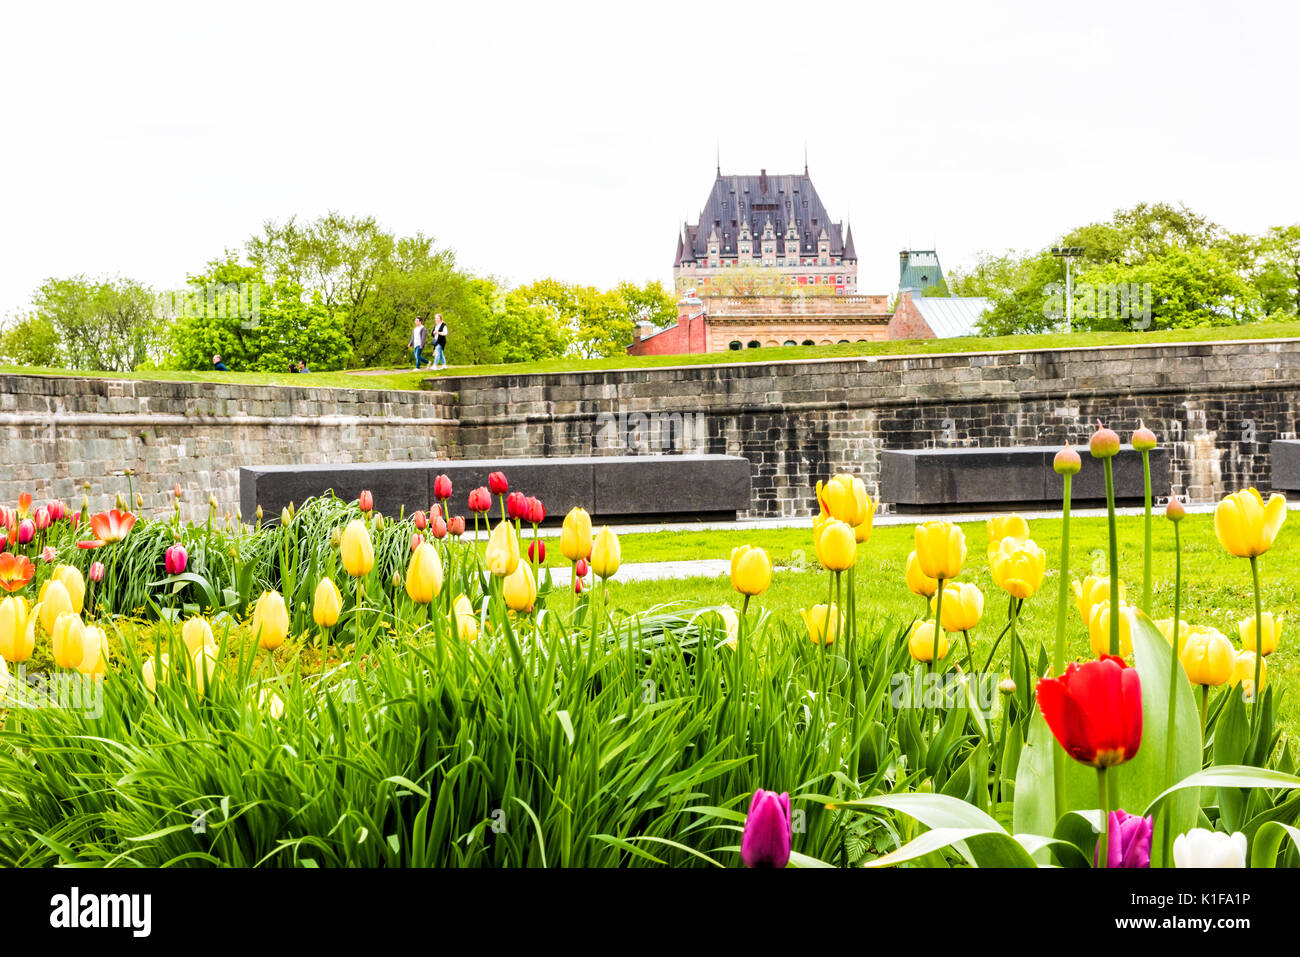 Quebec City, Canada - May 29, 2017: Green grass fields with colorful tulip flowers in park with fortifications stone wall and cityscape or skyline vie - Stock Image